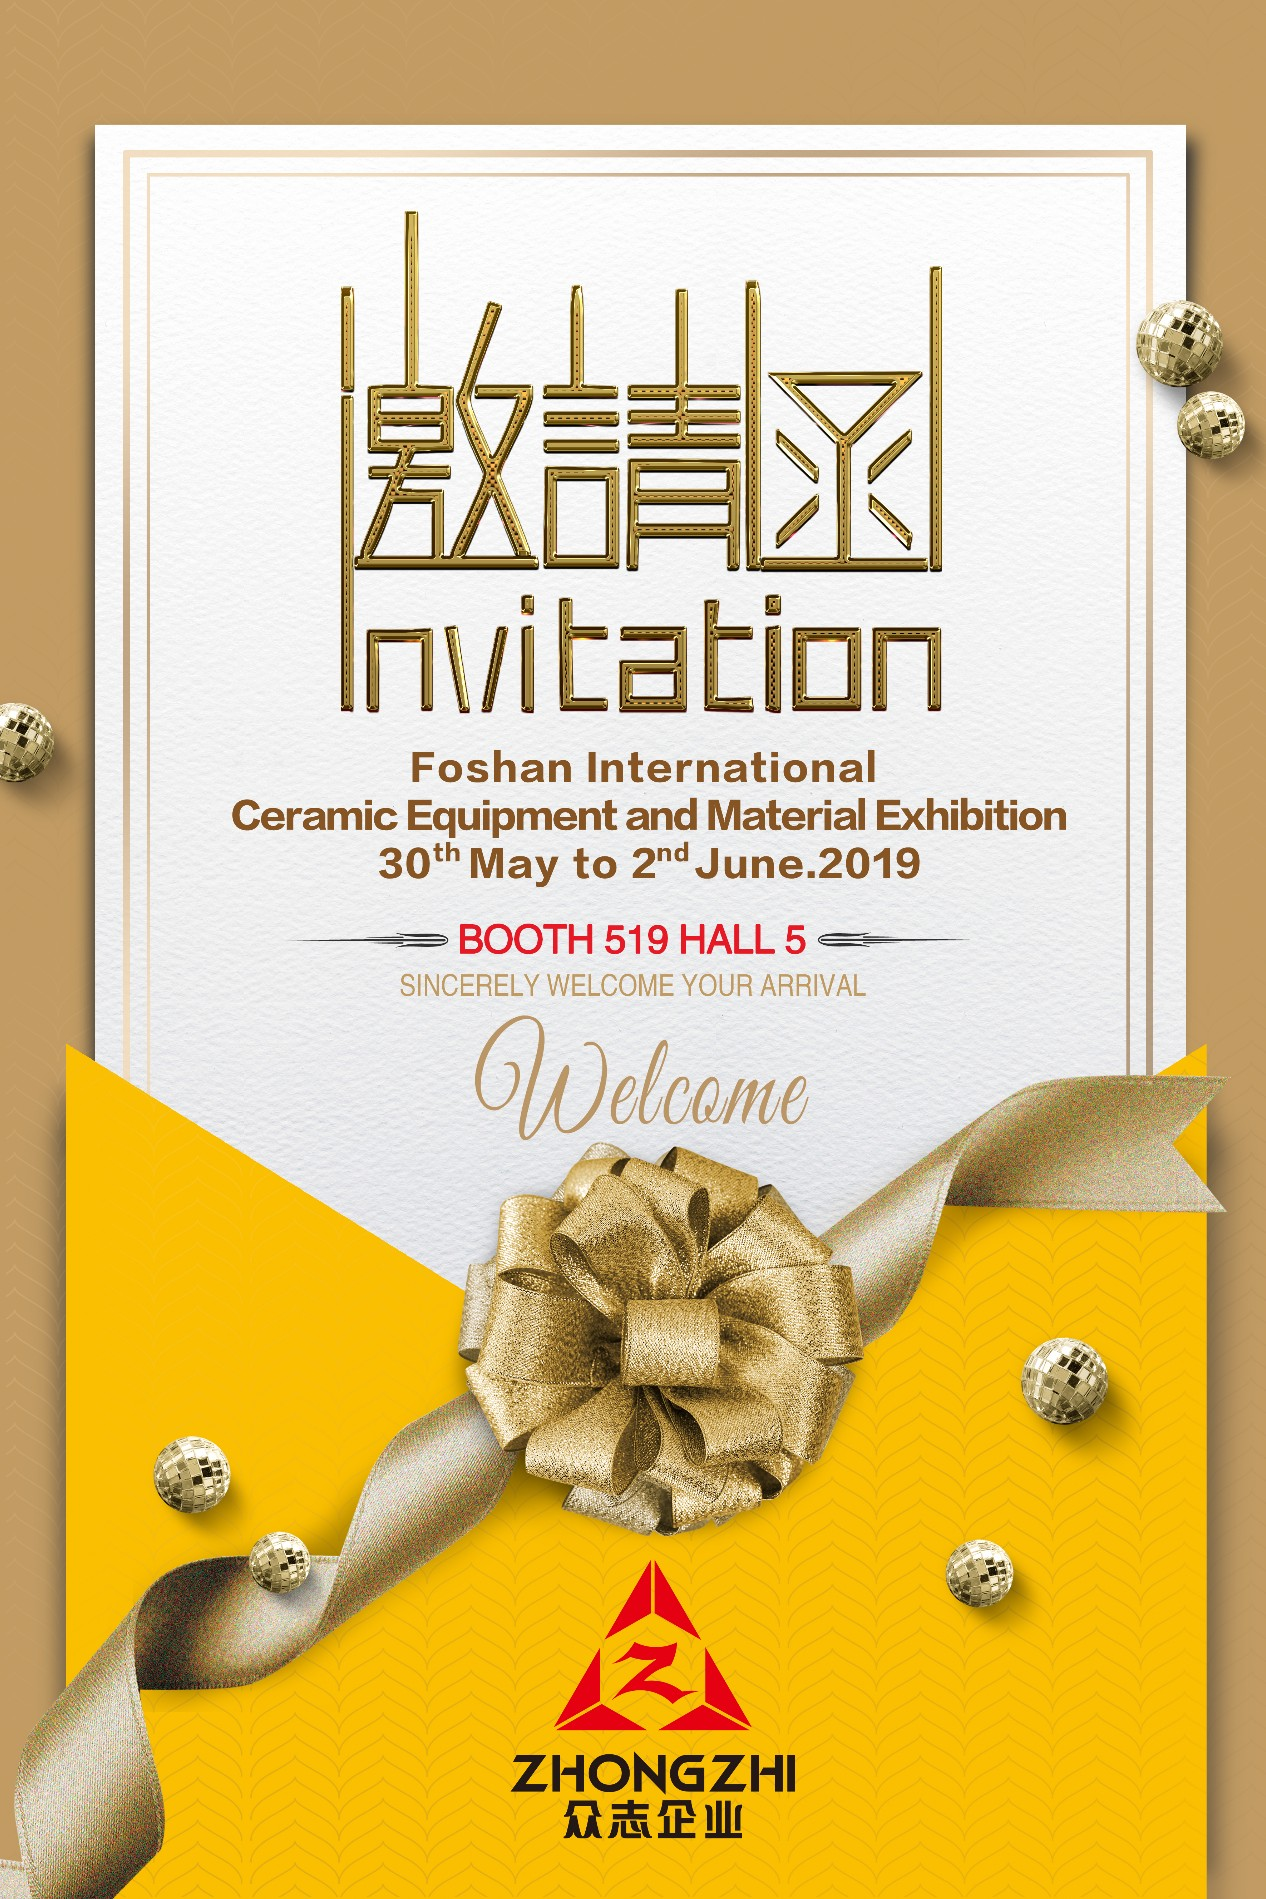 FOSHAN INTERNATIONAL CERMAIC EQUIPMENT AND MATERIAL EXHIBITION